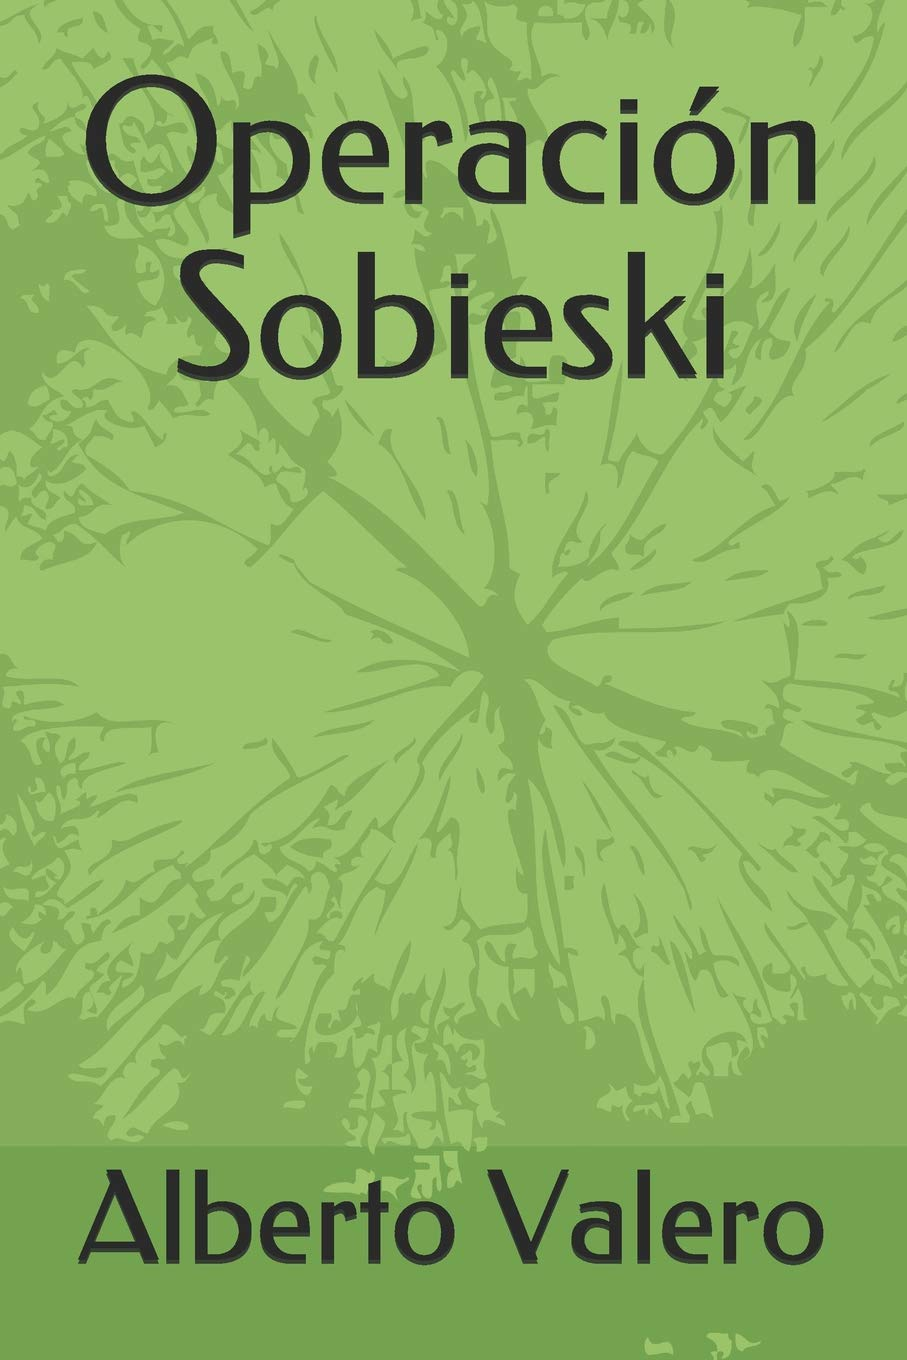 Operación Sobieski Tapa blanda – 29 ago 2018 Alberto Valero Independently published 1719947694 Fiction / Biographical